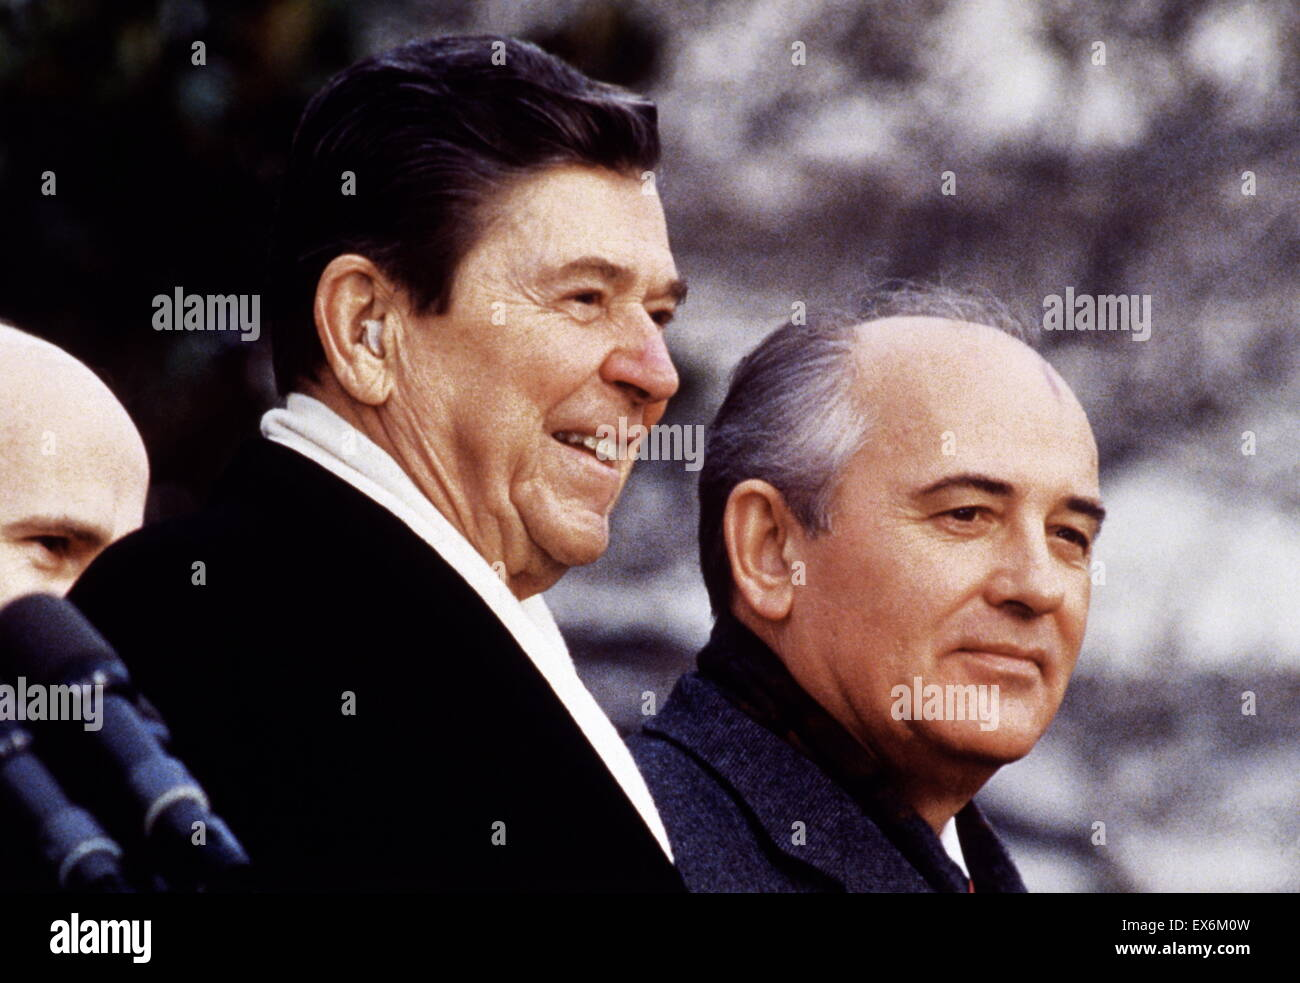 US President Ronald Reagan with Russian leader Mikhail Gorbachev 1986 - Stock Image